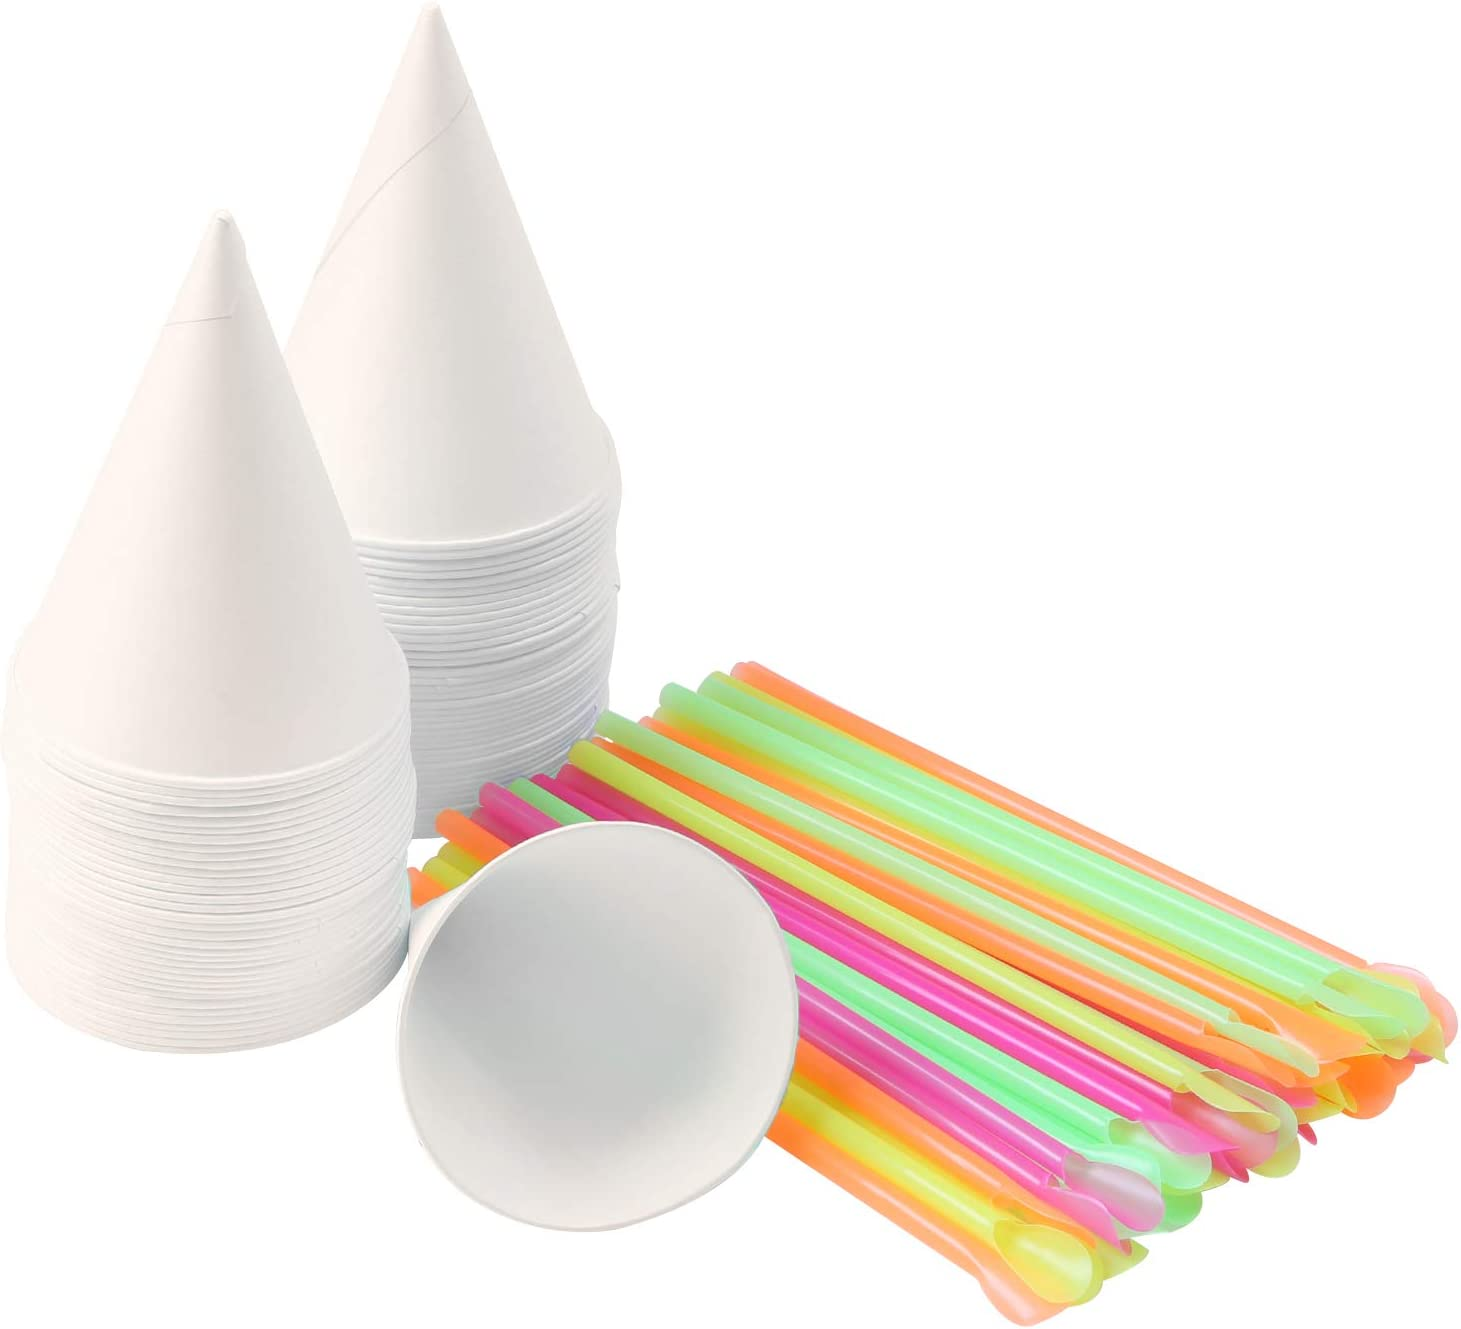 Ruisita 100 Pieces 6 Ounce Snow Cone Cups Cone Water Cups Shaved Ice Cups with Snow Cone Spoon Straws for Home or Company